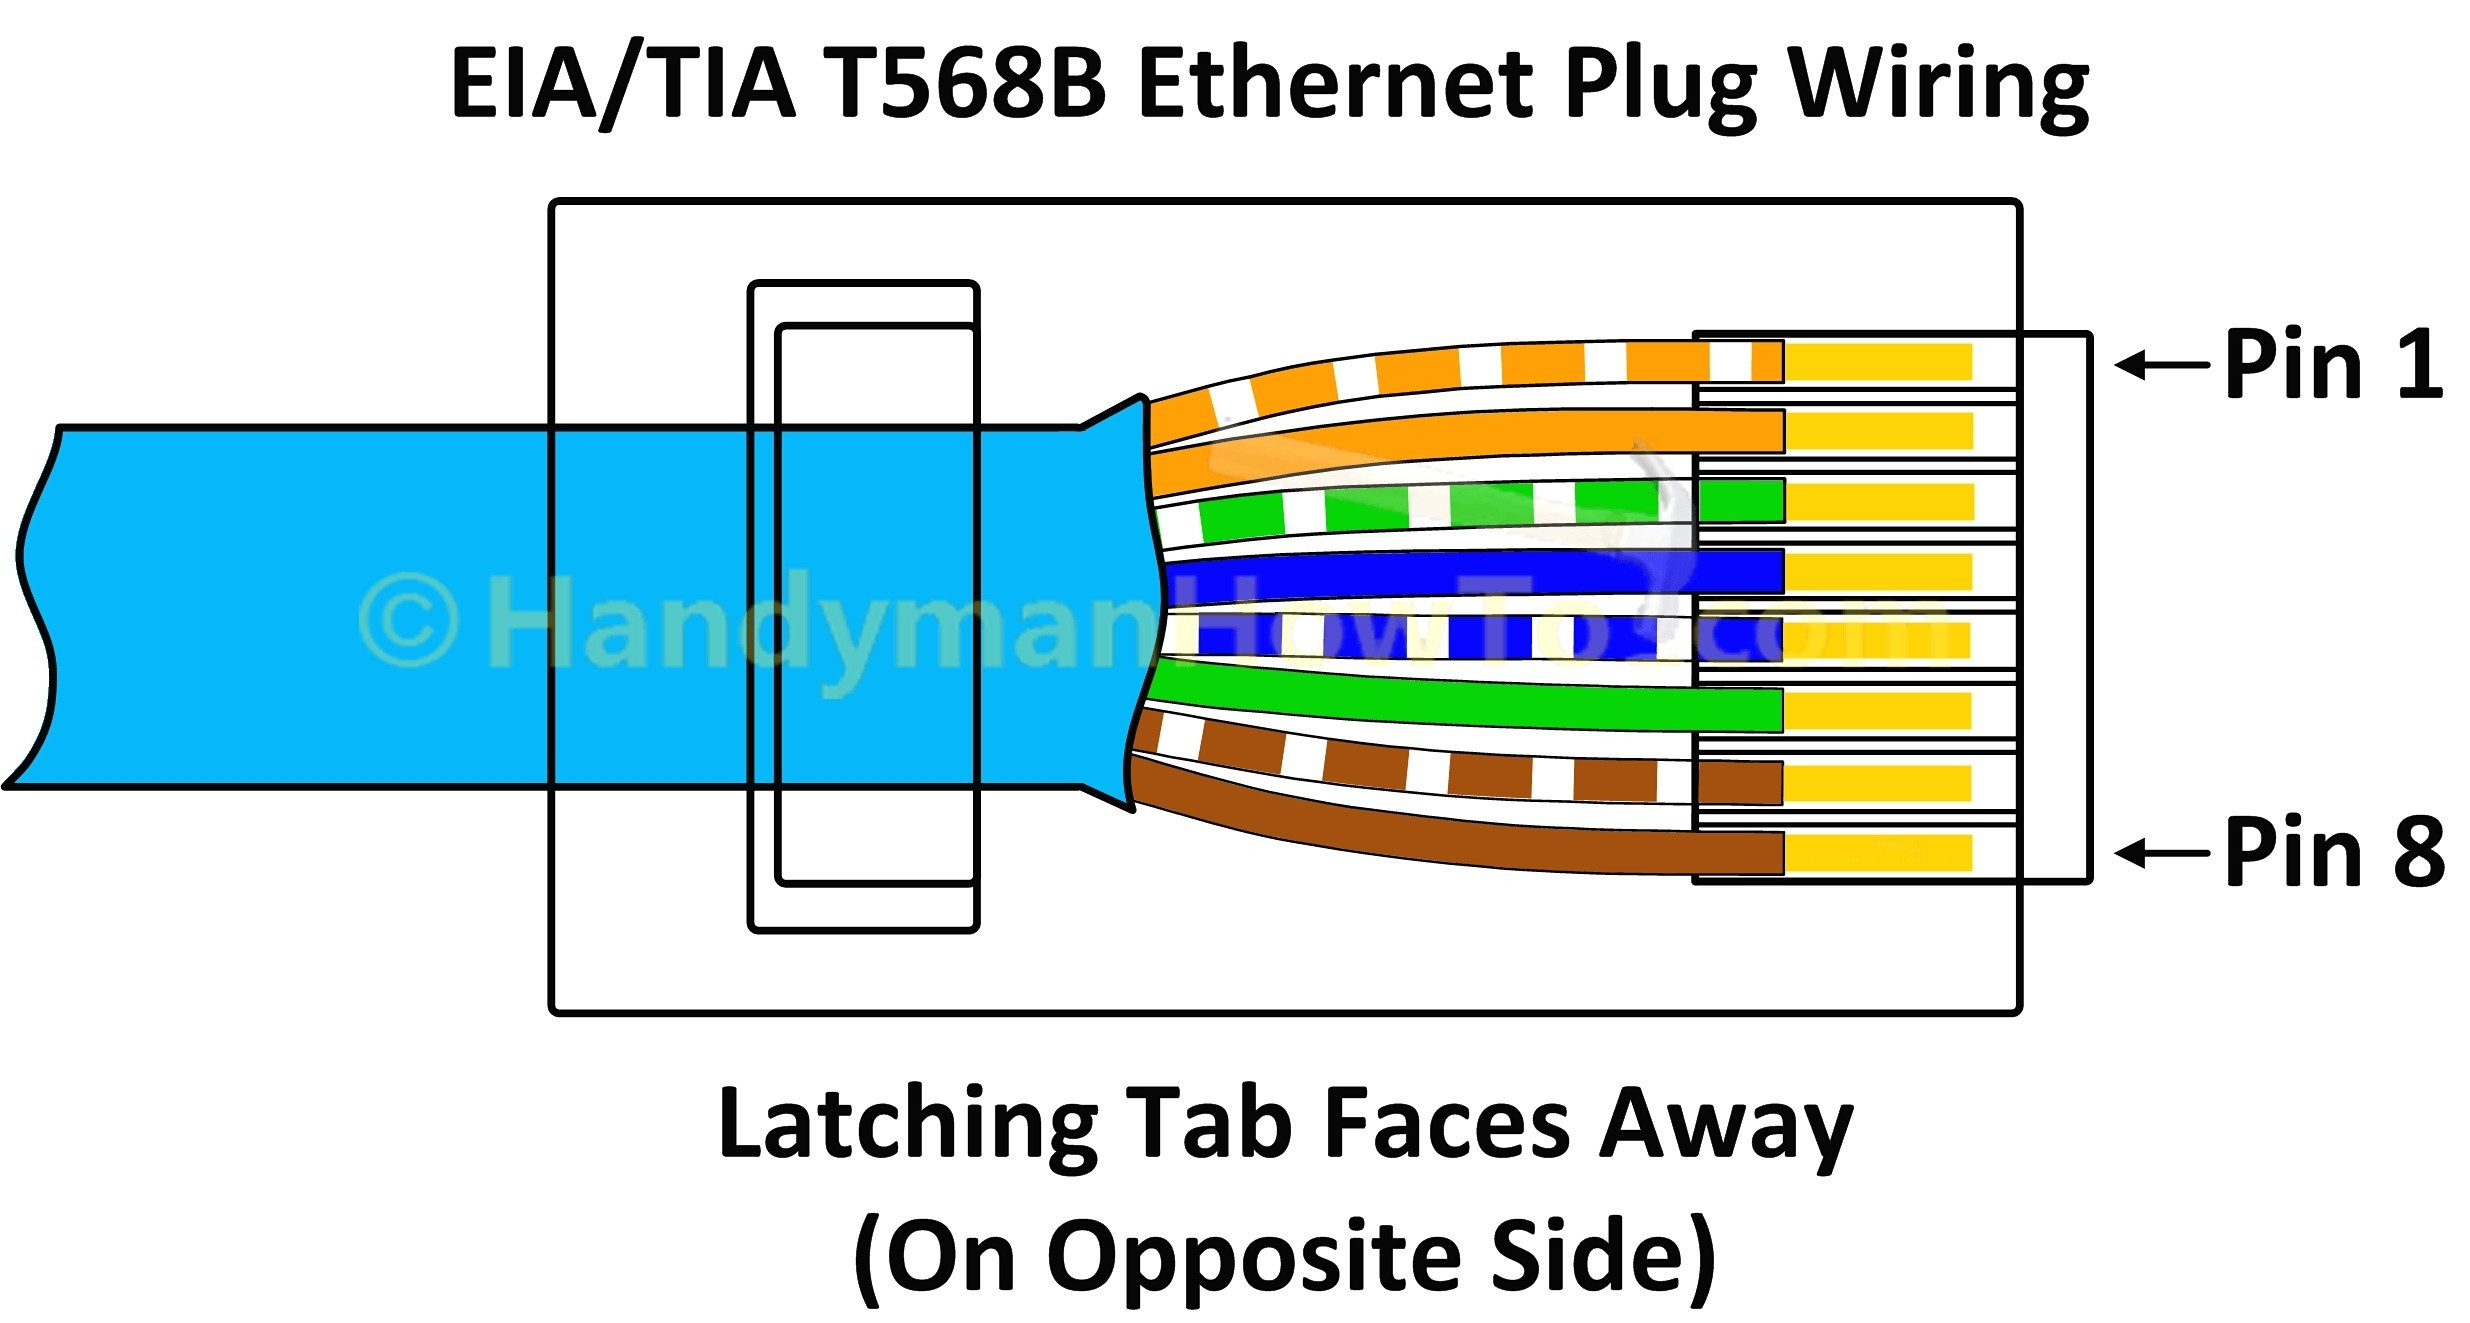 Cat 5 Wiring Diagram Pdf Free Wiring Diagram Ethernet Over Power Cat 5 B  Diagram